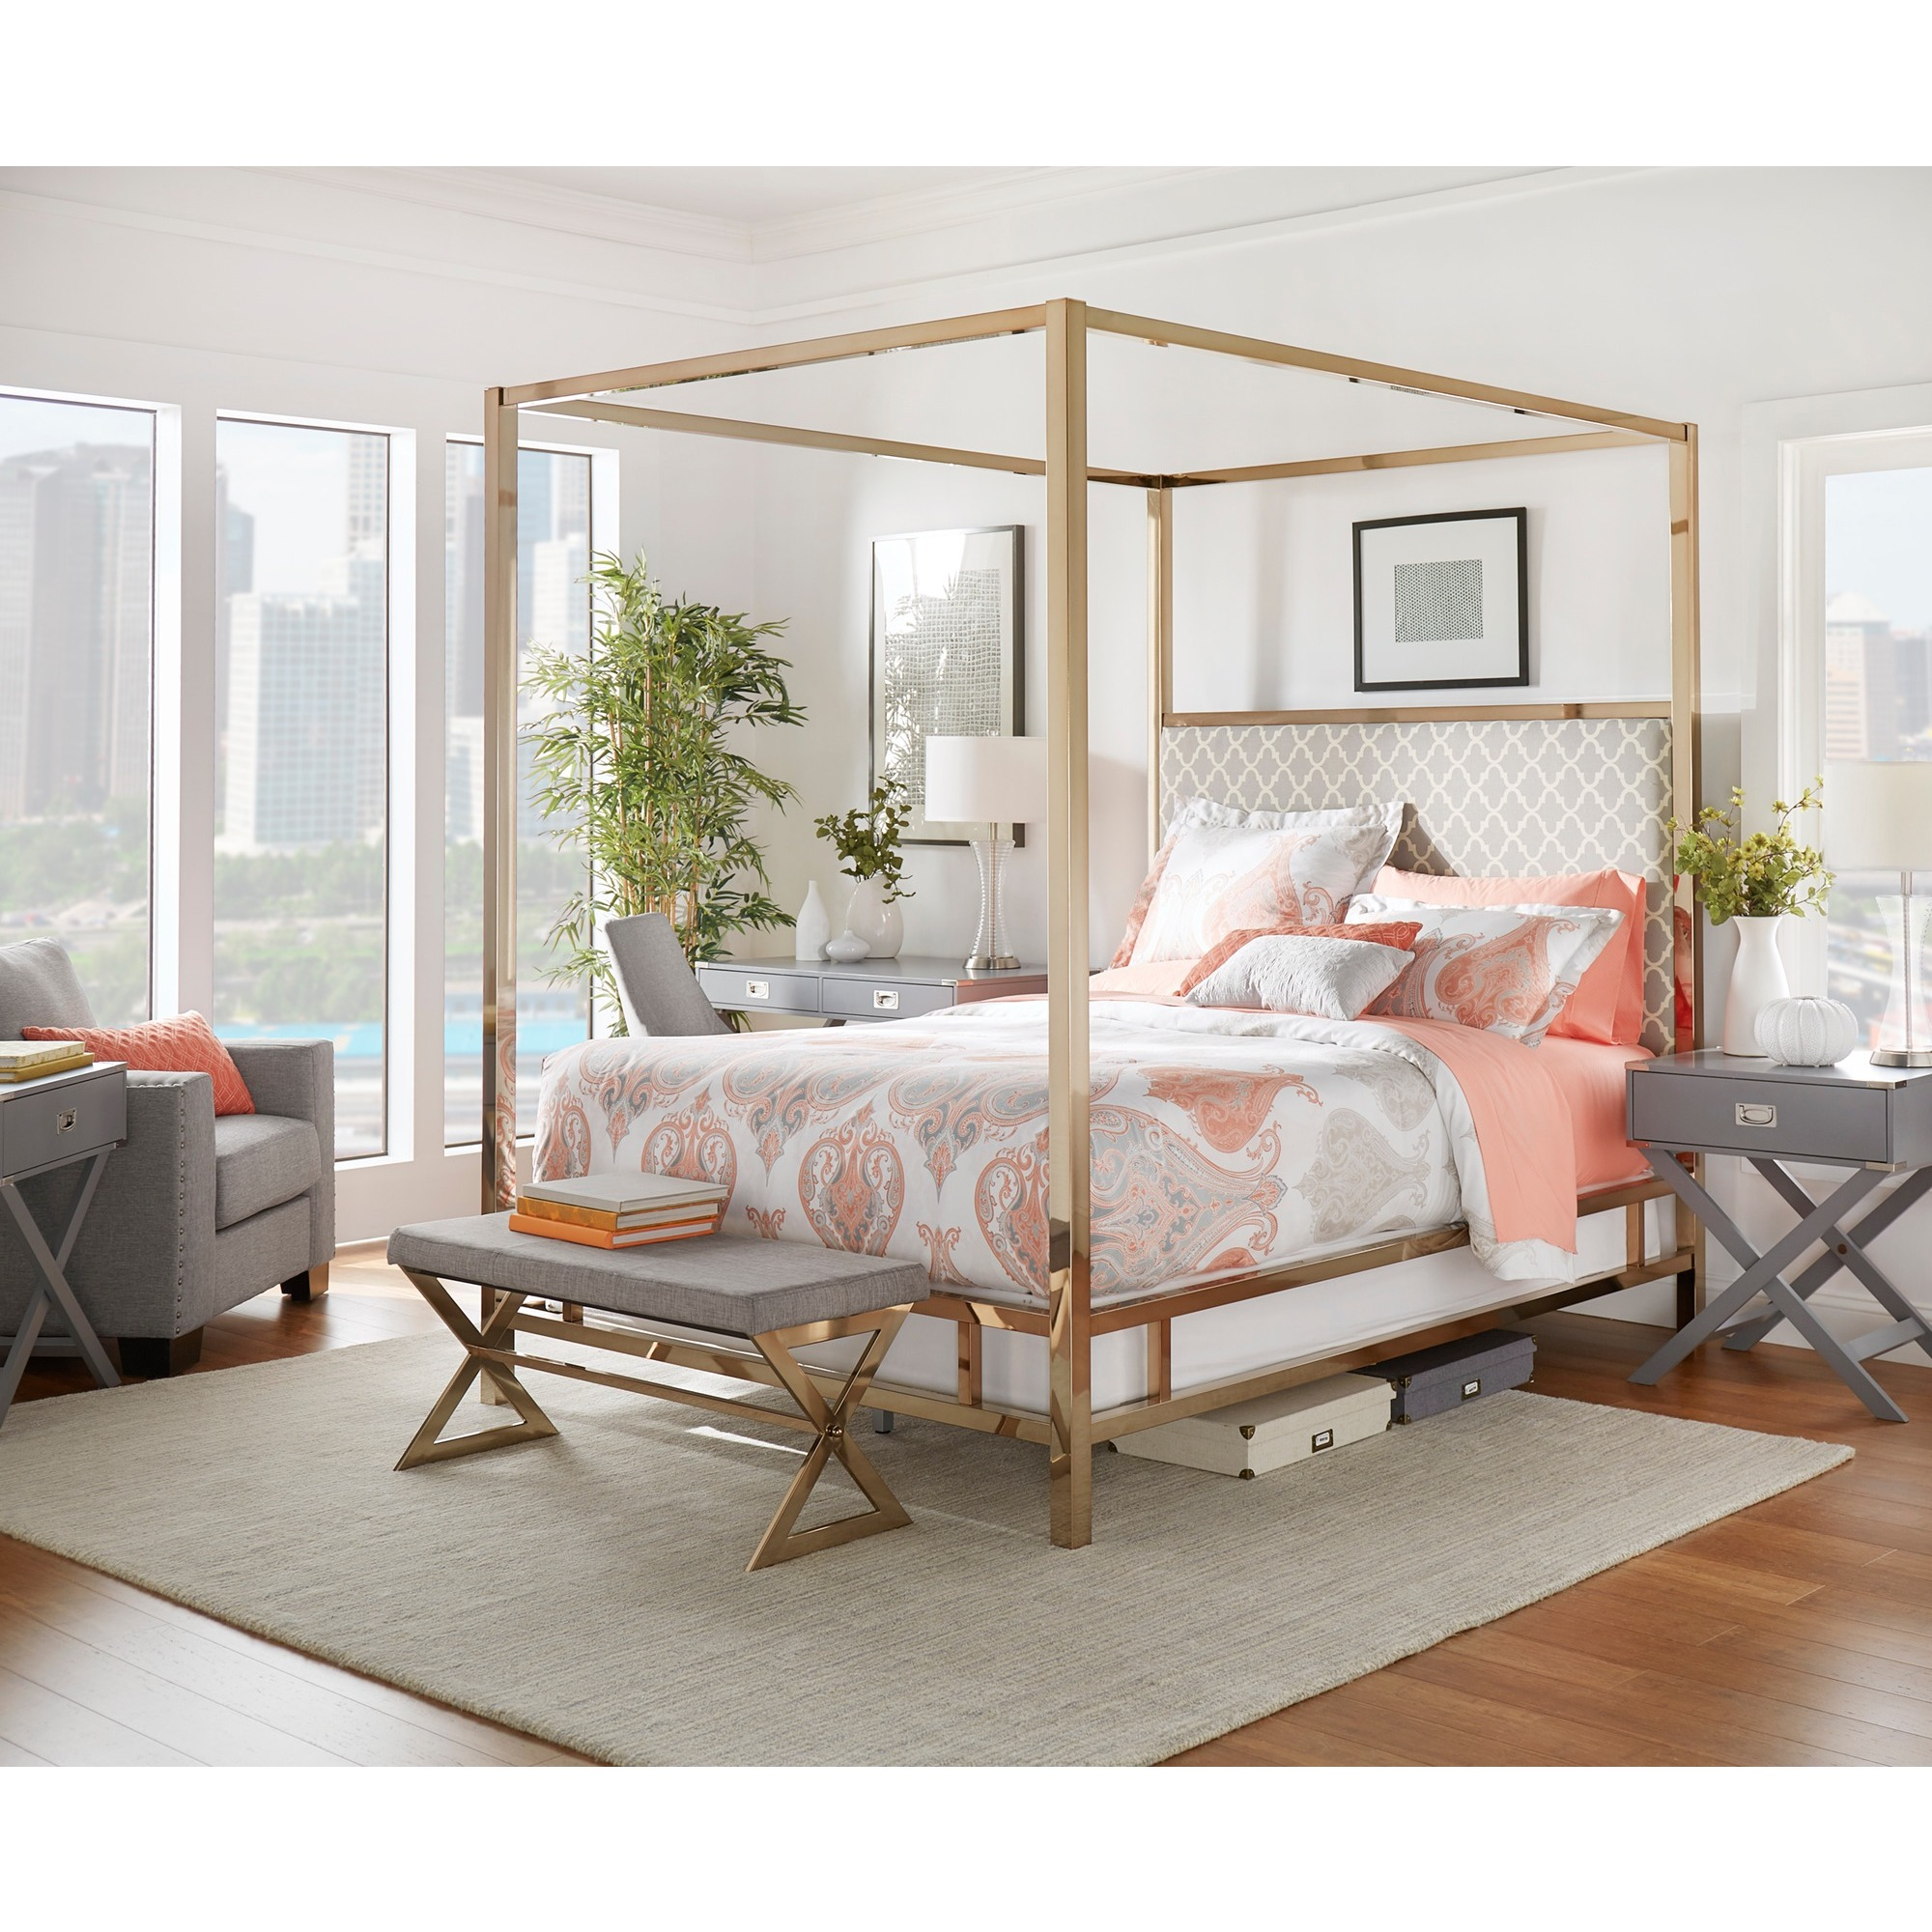 Solivita King-size Canopy Champagne Gold Metal Poster Bed by iNSPIRE Q Bold  - Free Shipping Today - Overstock.com - 17498598